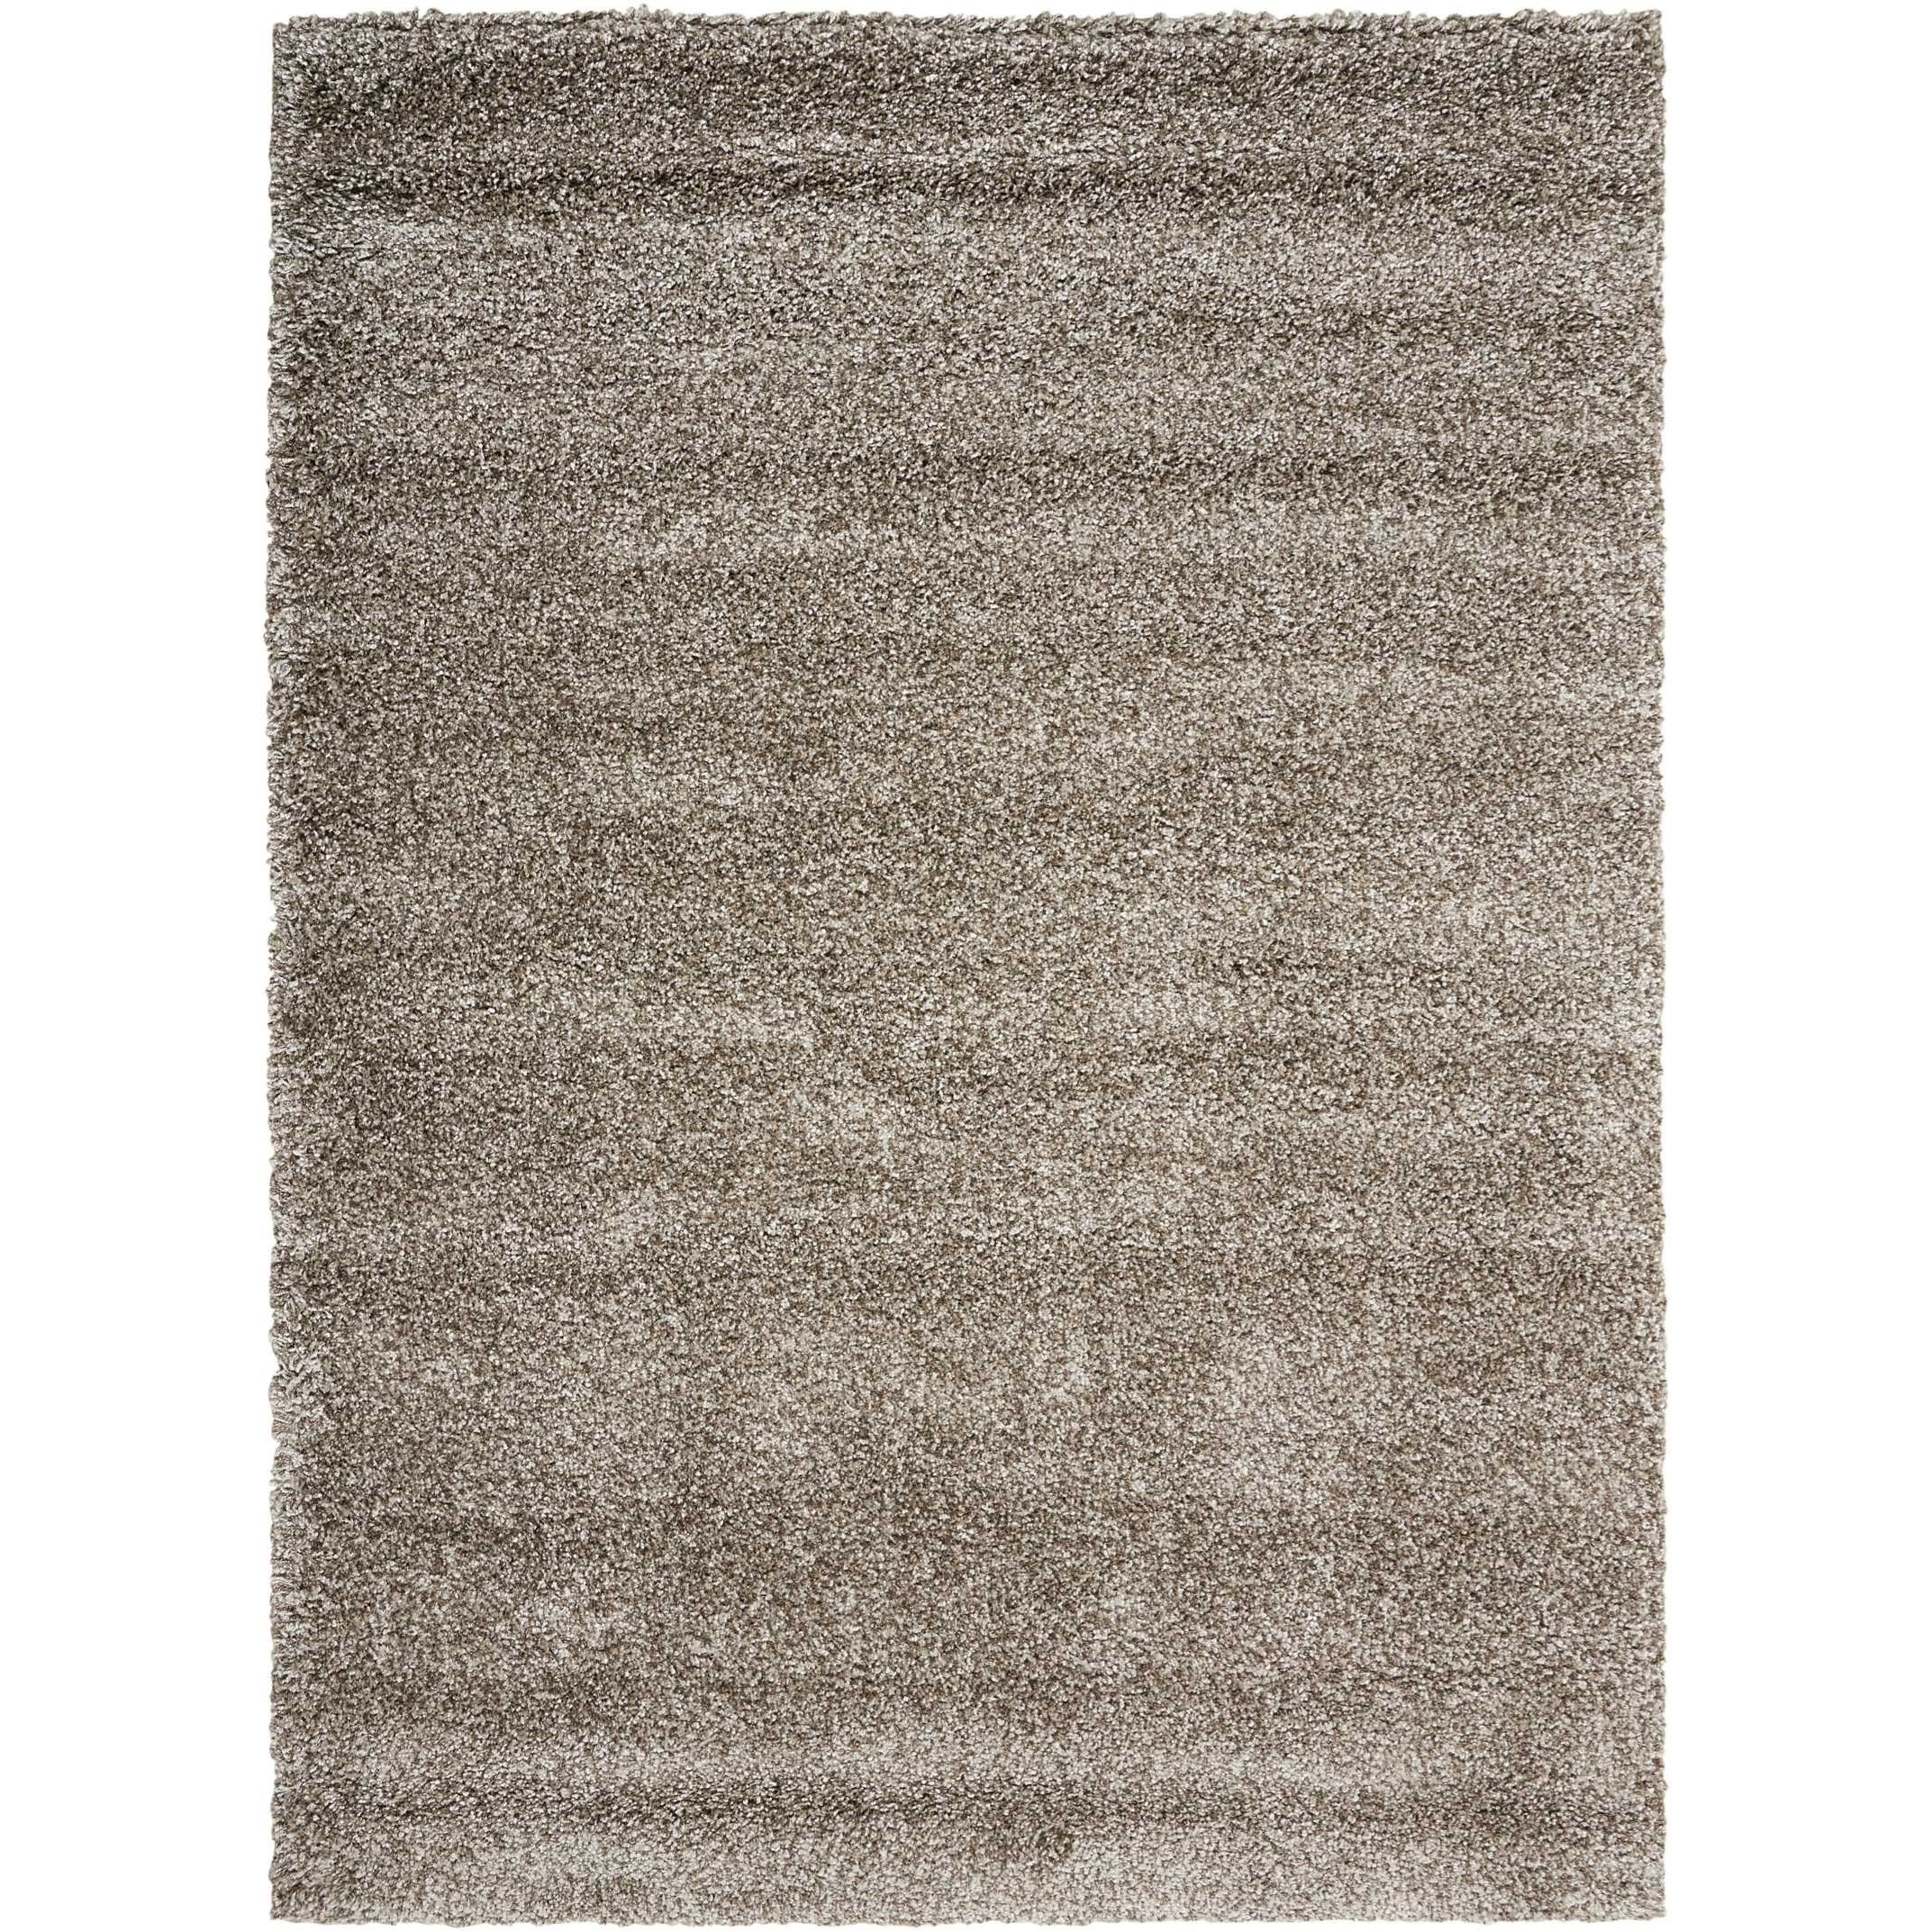 """Amore 3'11"""" x 5'11"""" Stone Rectangle Rug by Nourison at Sprintz Furniture"""